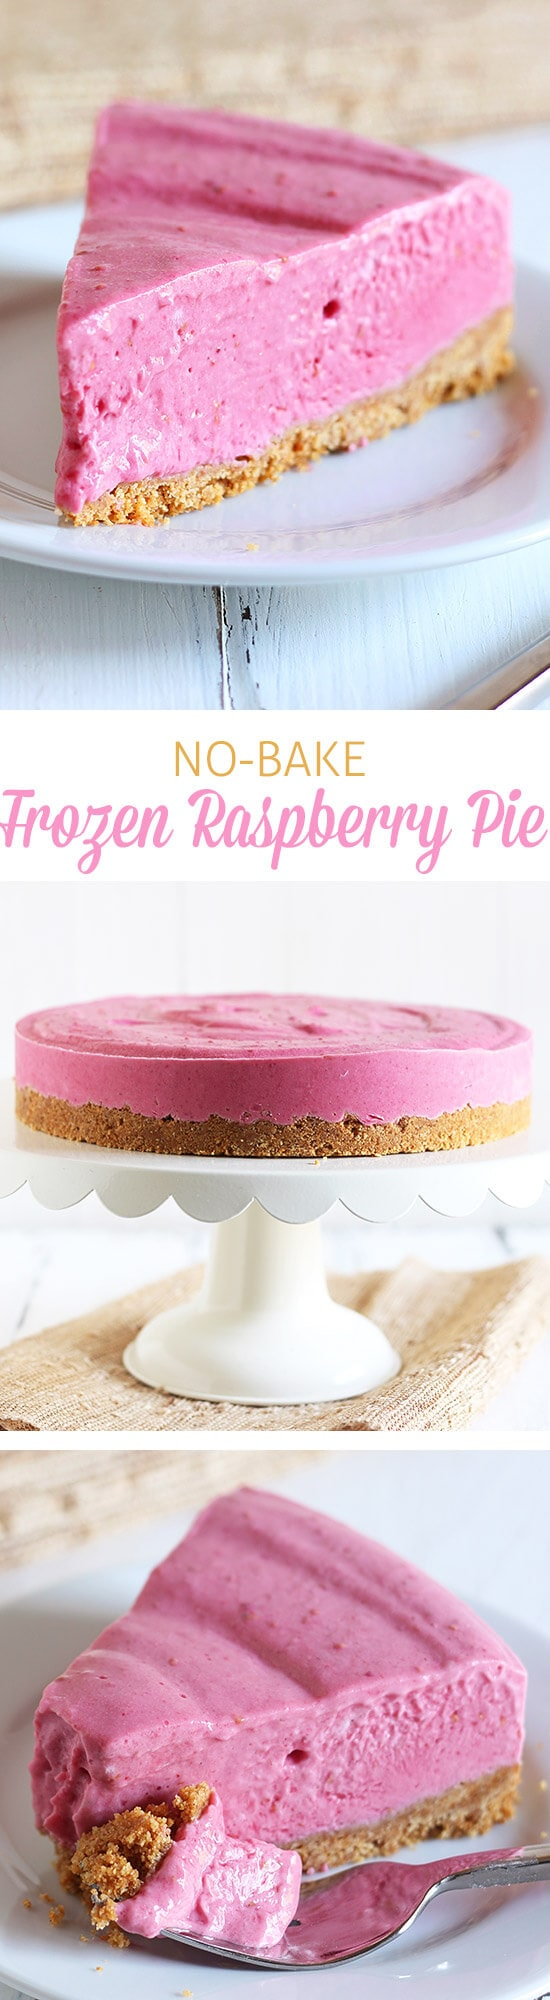 This No Bake Frozen Raspberry Pie is the ultimate fresh and frosty summer recipe perfect for entertaining and lightened up with nonfat yogurt!